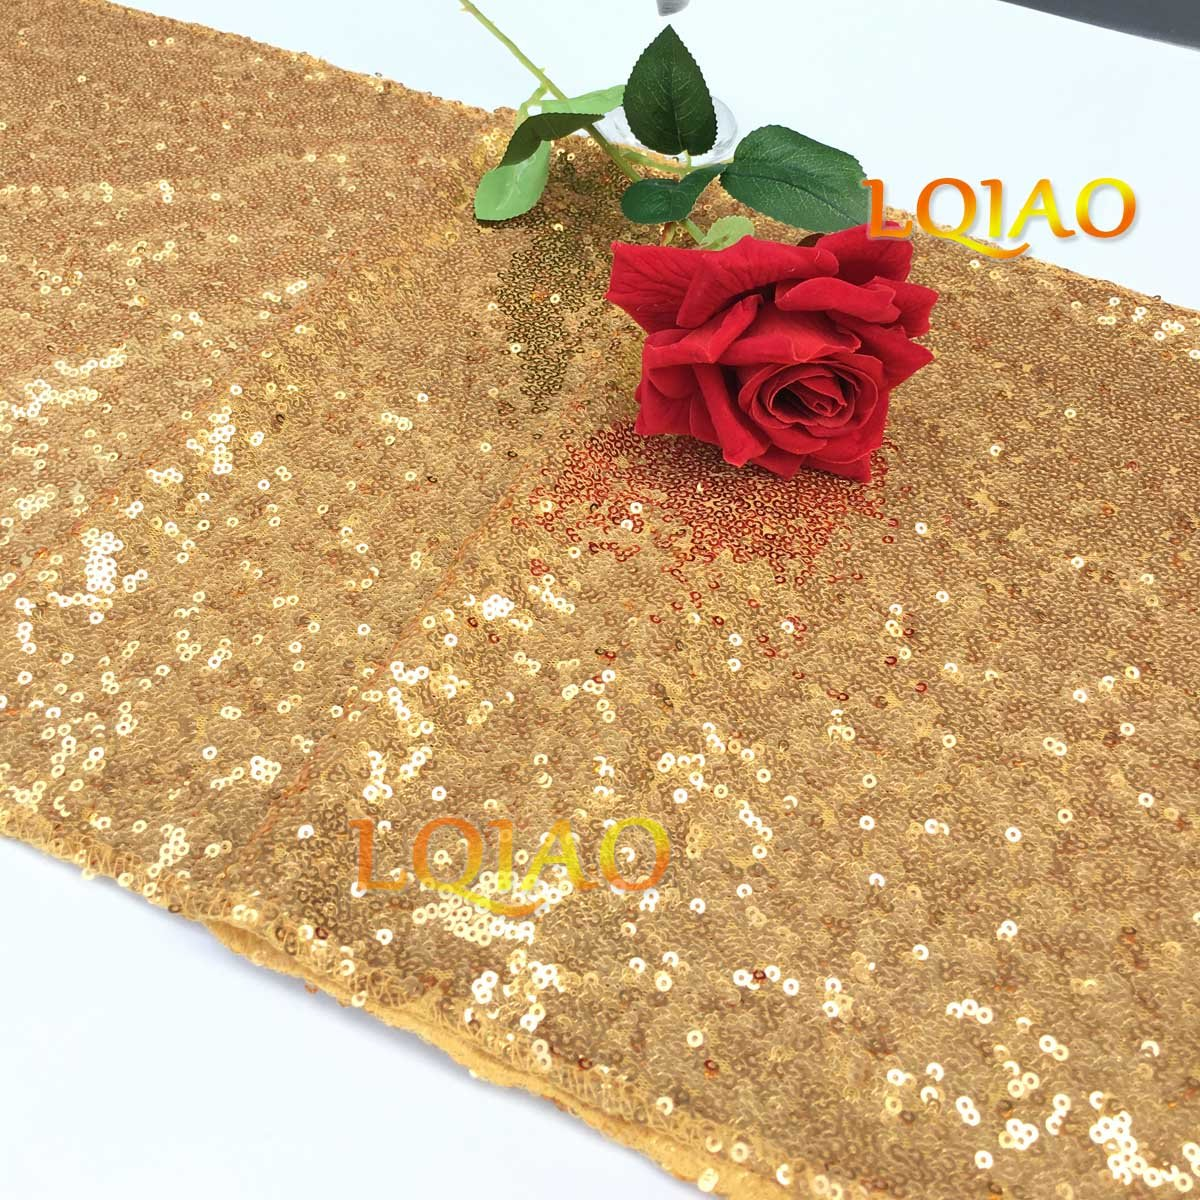 LQIAO Christmas Table Runner Sequin 12x108-in, Gold, Shiny Fabric Birthday/Wedding/Party Decoration(wholesale Possible), Pack of 20 PCS by LQIAO